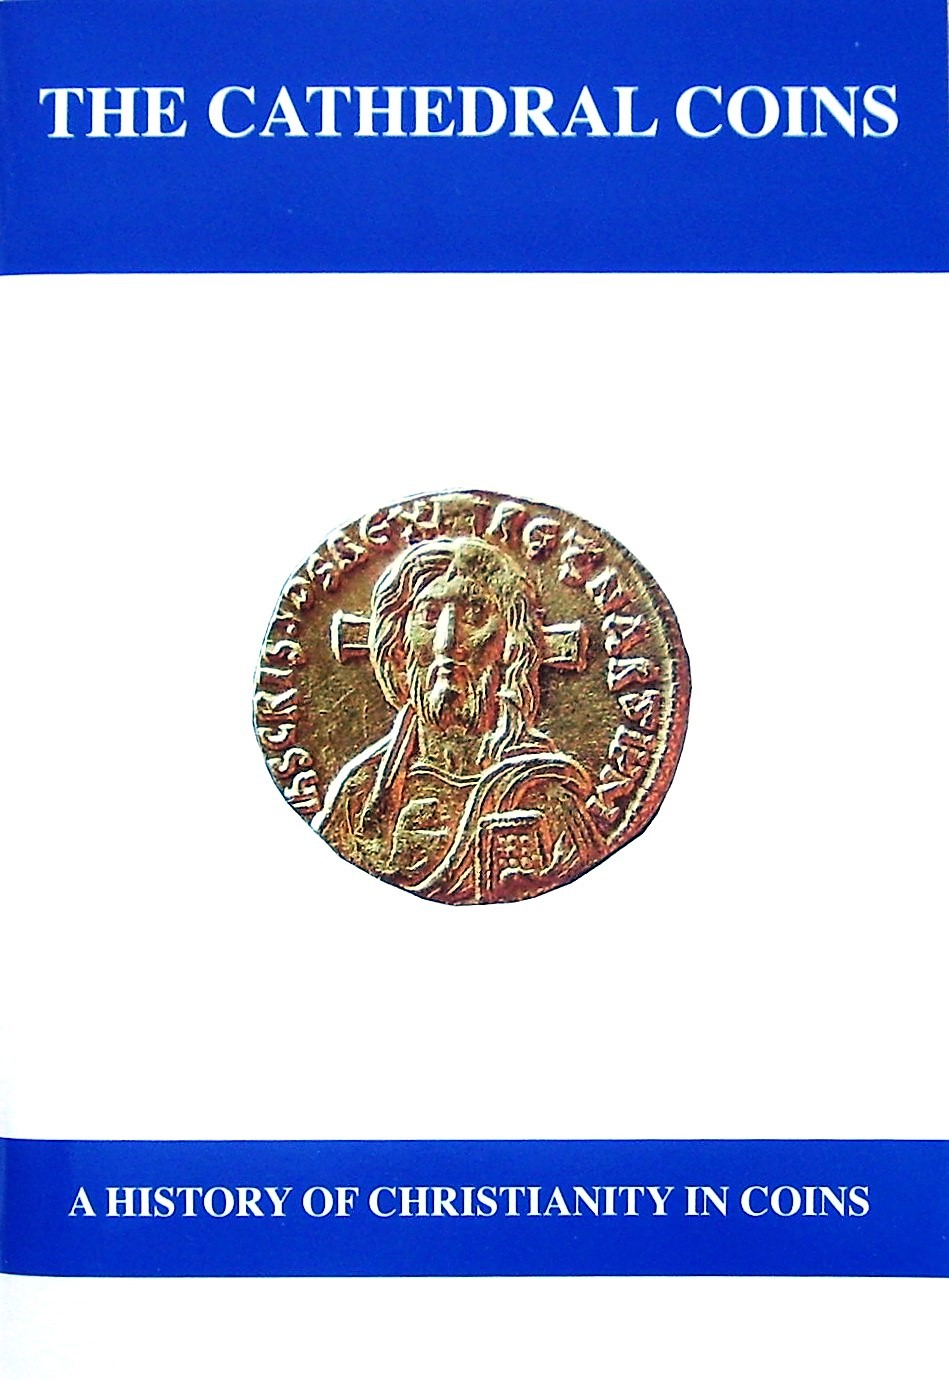 Cathedral-Coins-cover